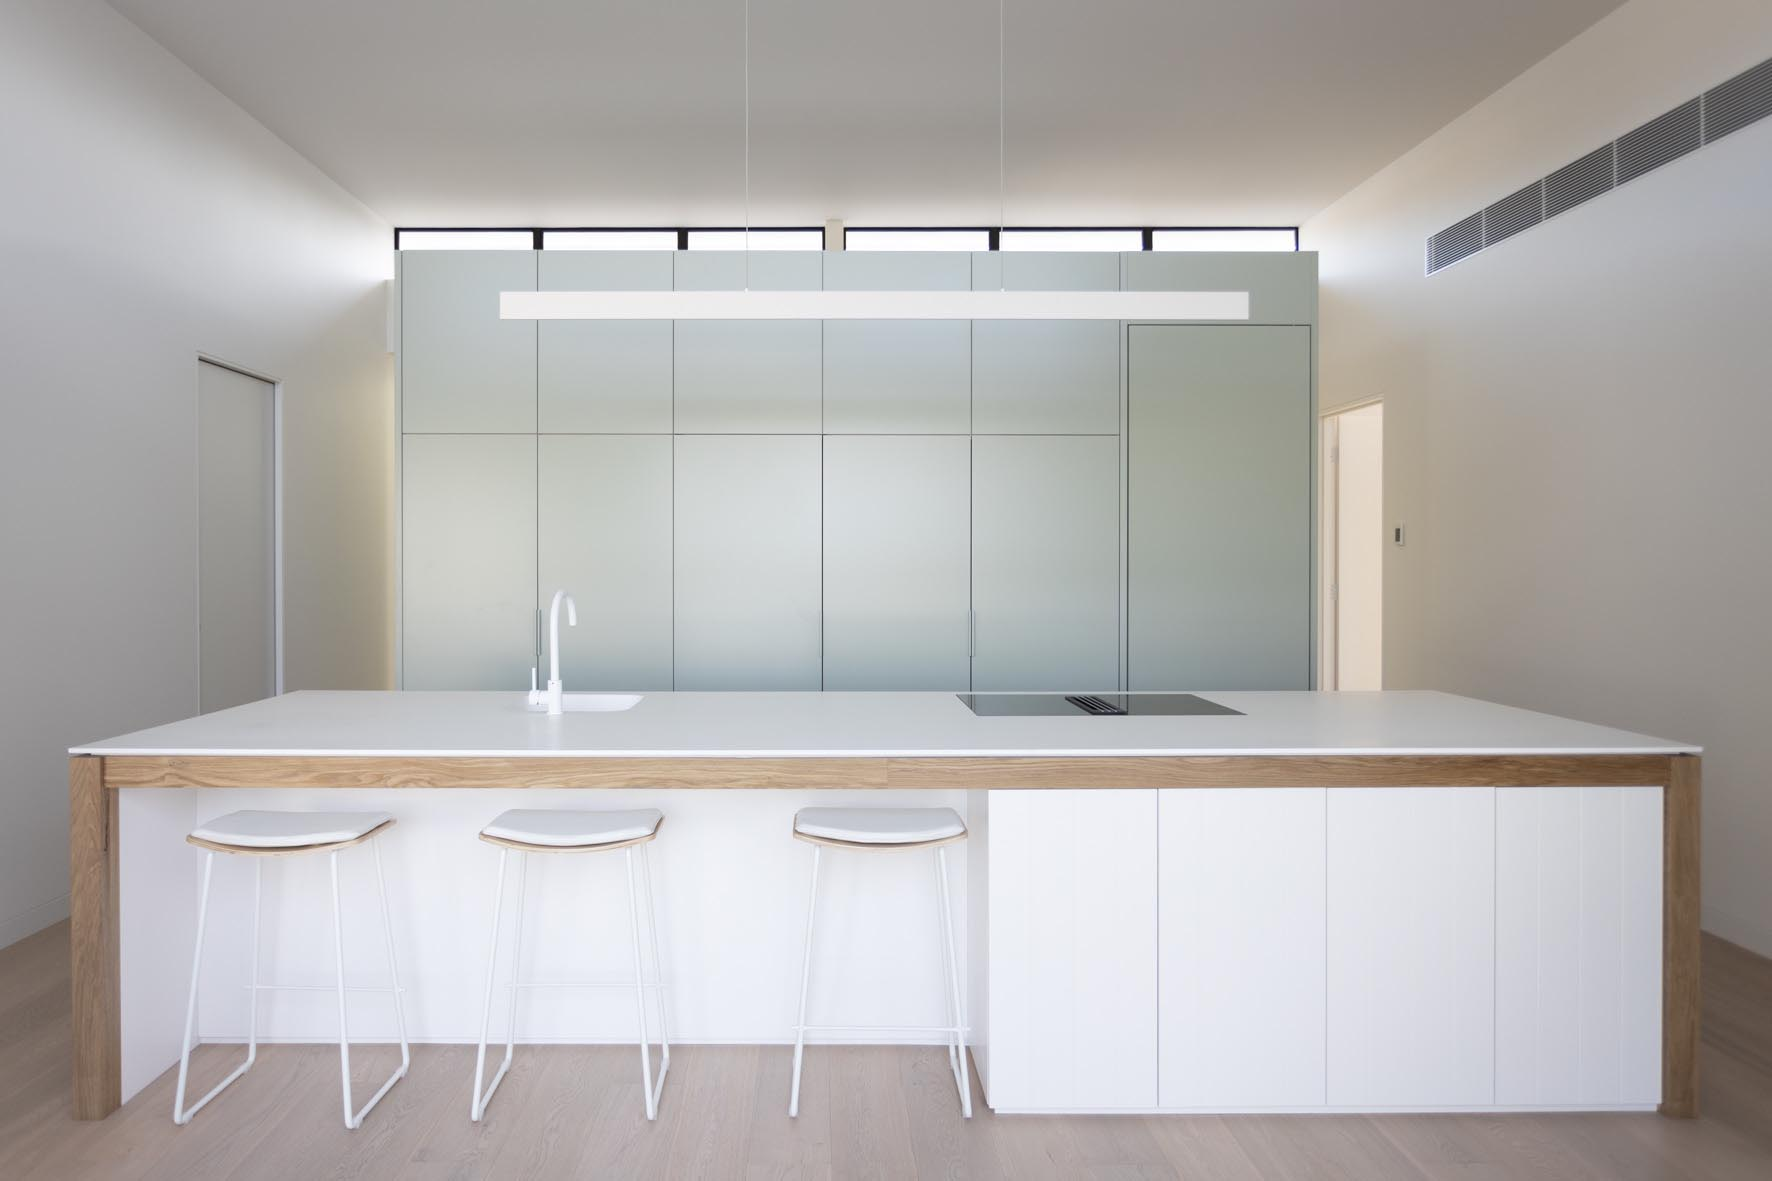 This kitchen has a minimalist design that includes an integrated fridge, and a large white island with wood detailing.